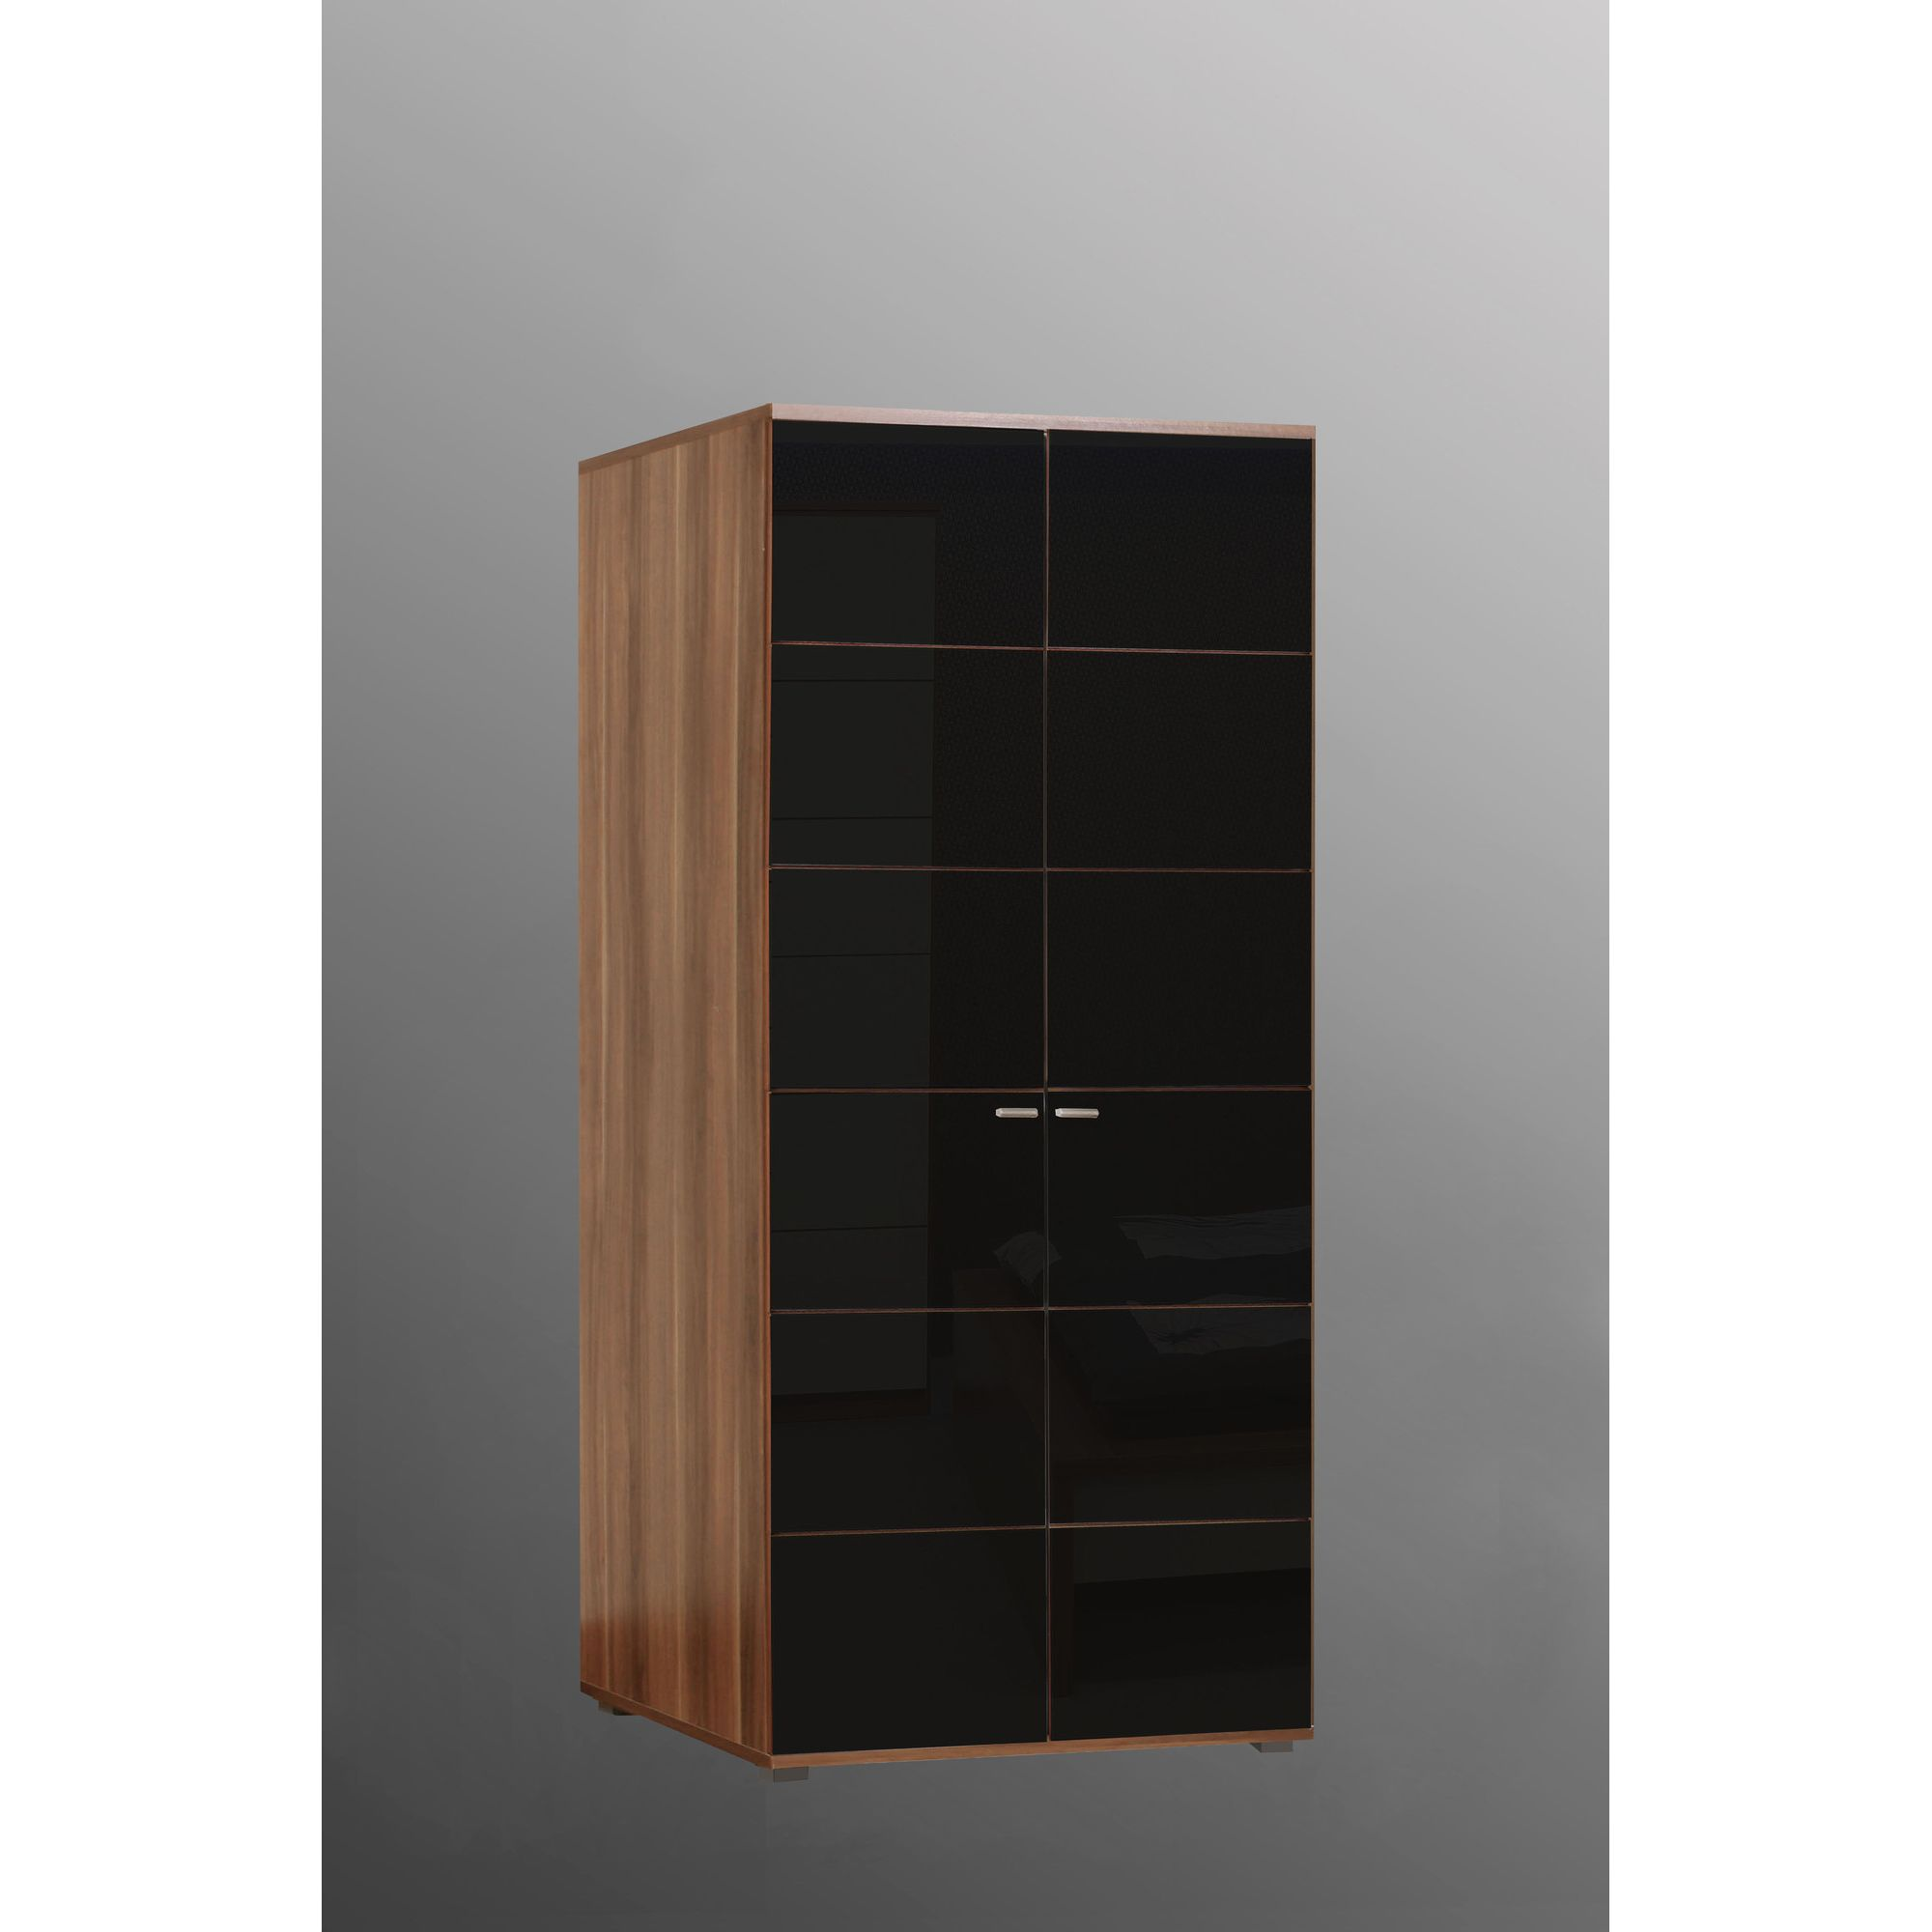 Ideal Furniture Anemone Two Door Wardrobe - Walnut with Black Gloss at Tesco Direct